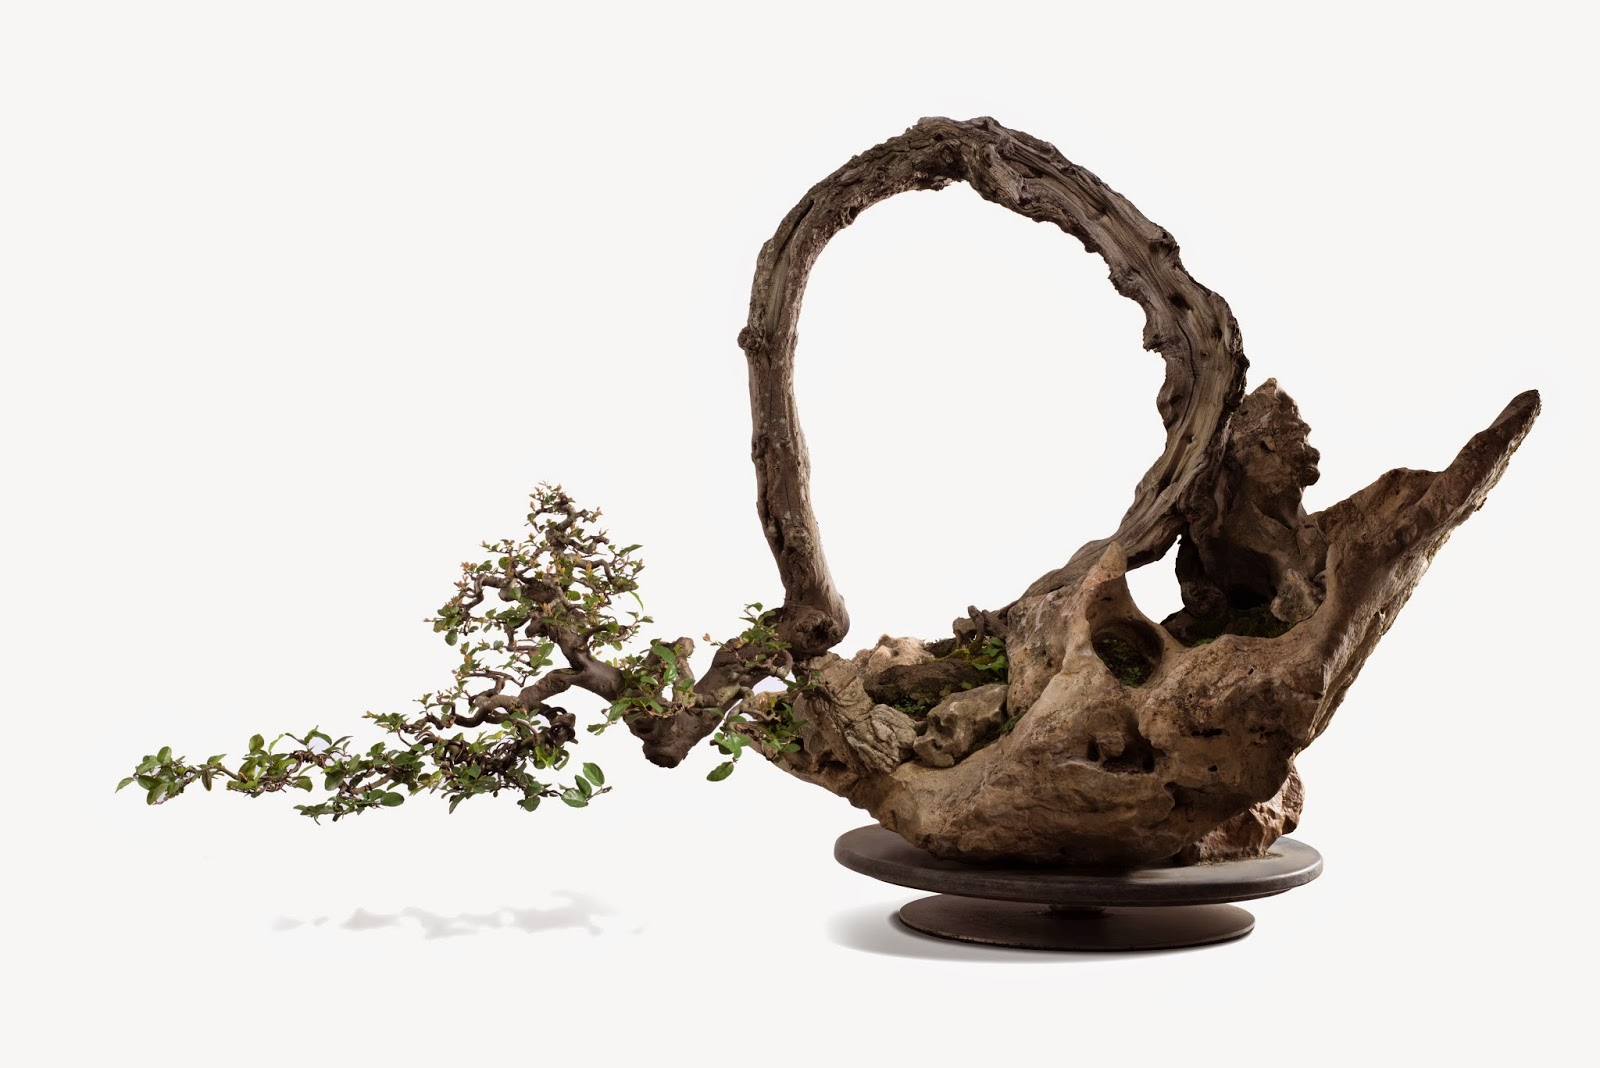 Kee Hua Chee Live 39LIVING SCULPTURES39 AKA THE ART OF BONSAI FROM